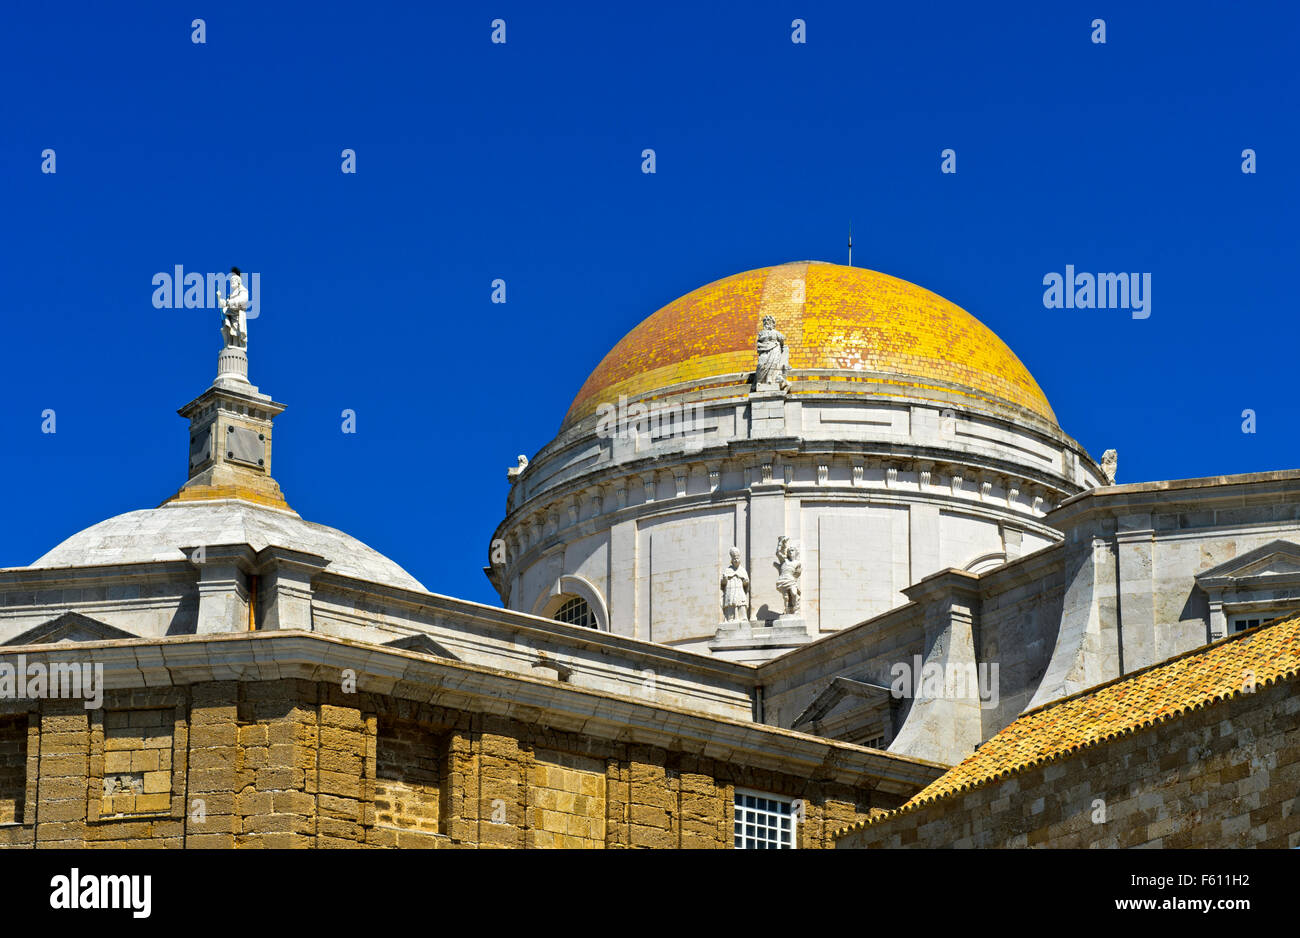 Dome, Cathedral of Cadiz, Andalucía, Spain - Stock Image